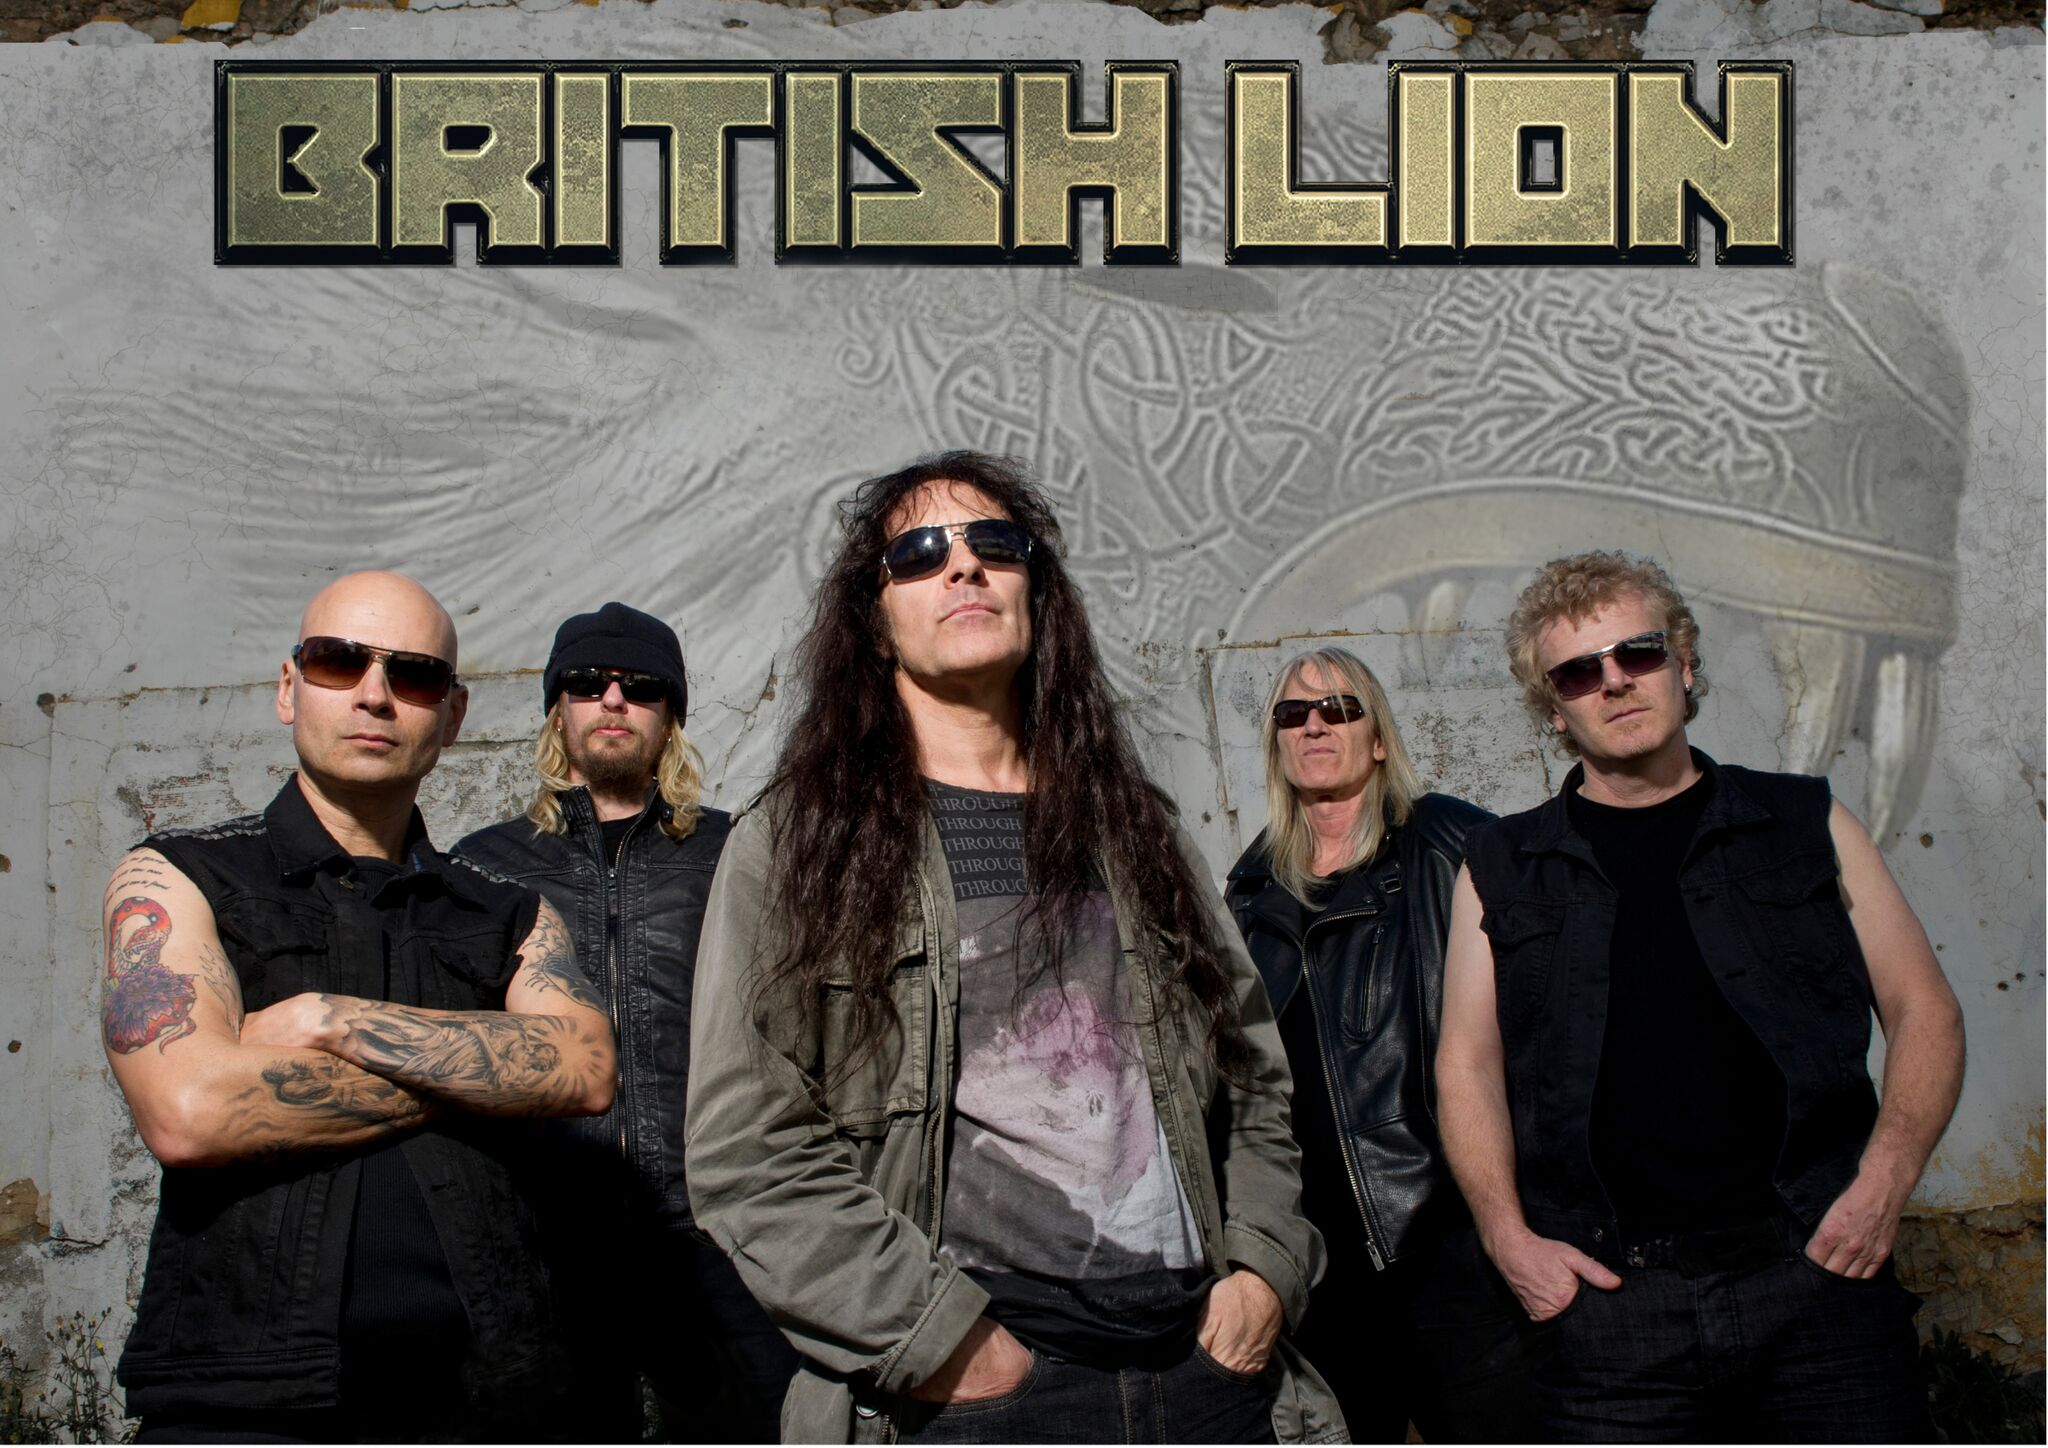 british-lion-logo